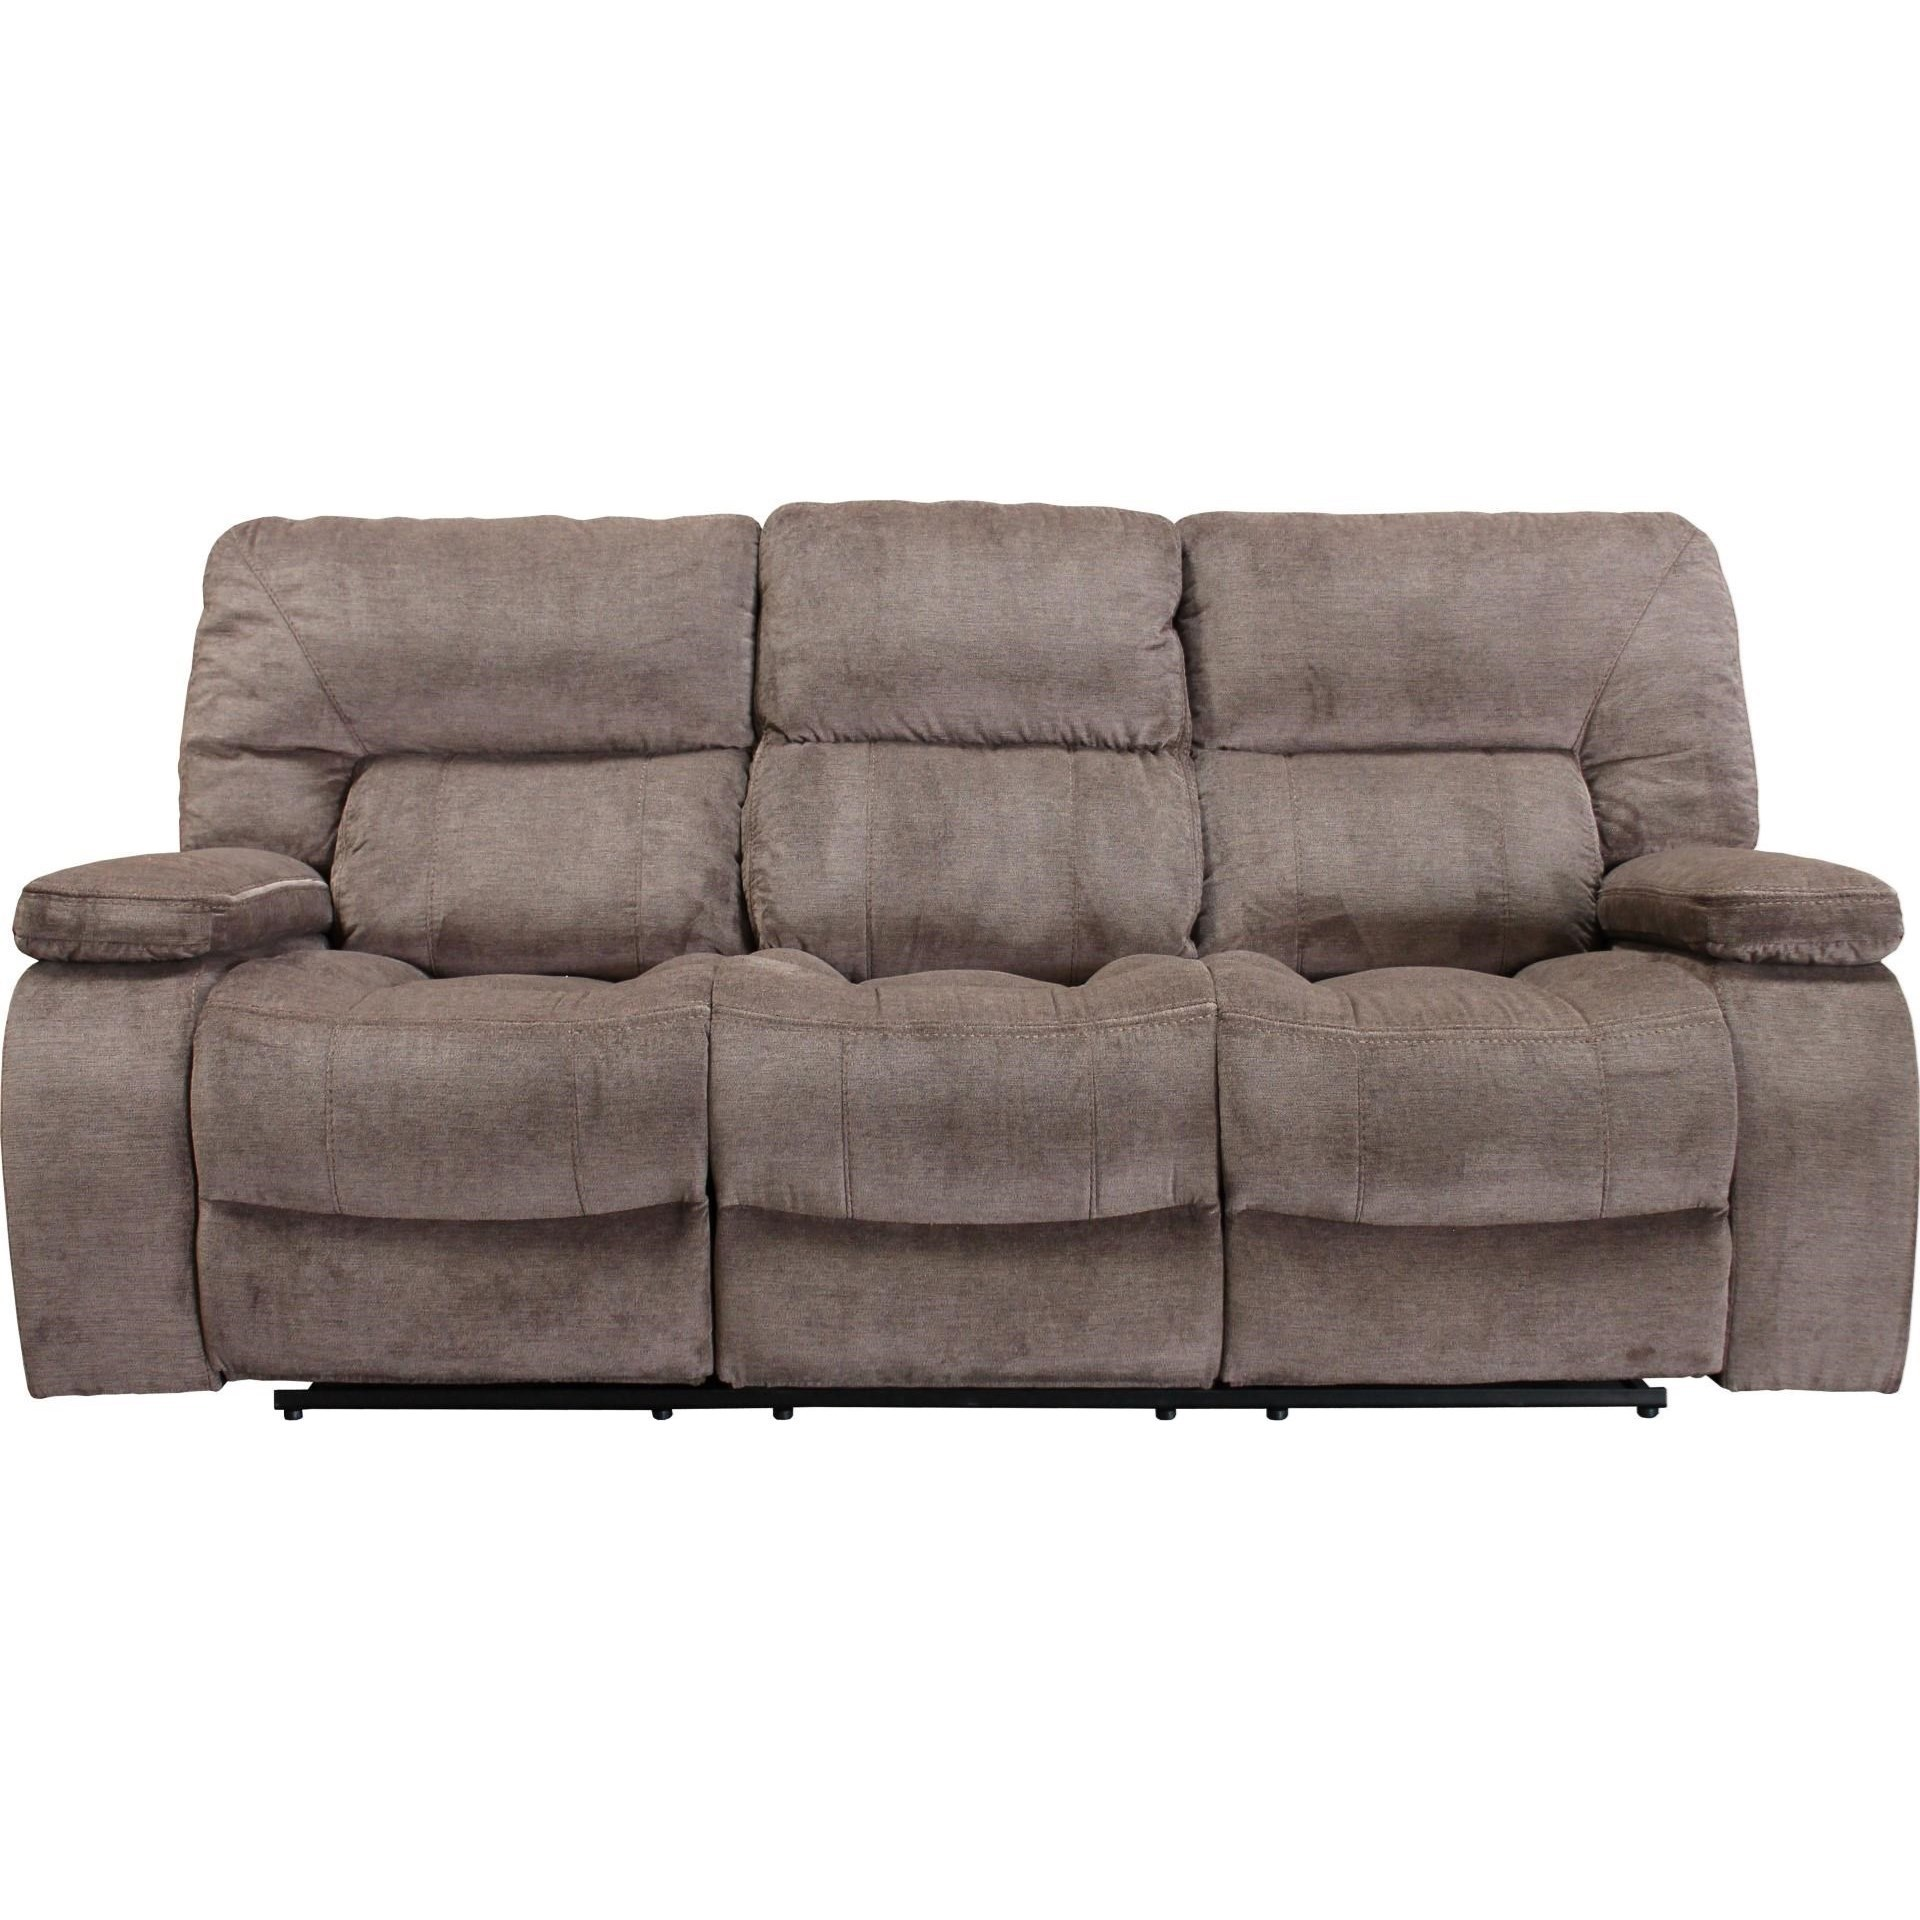 Superieur Parker Living ChapmanTriple Reclining Sofa ...